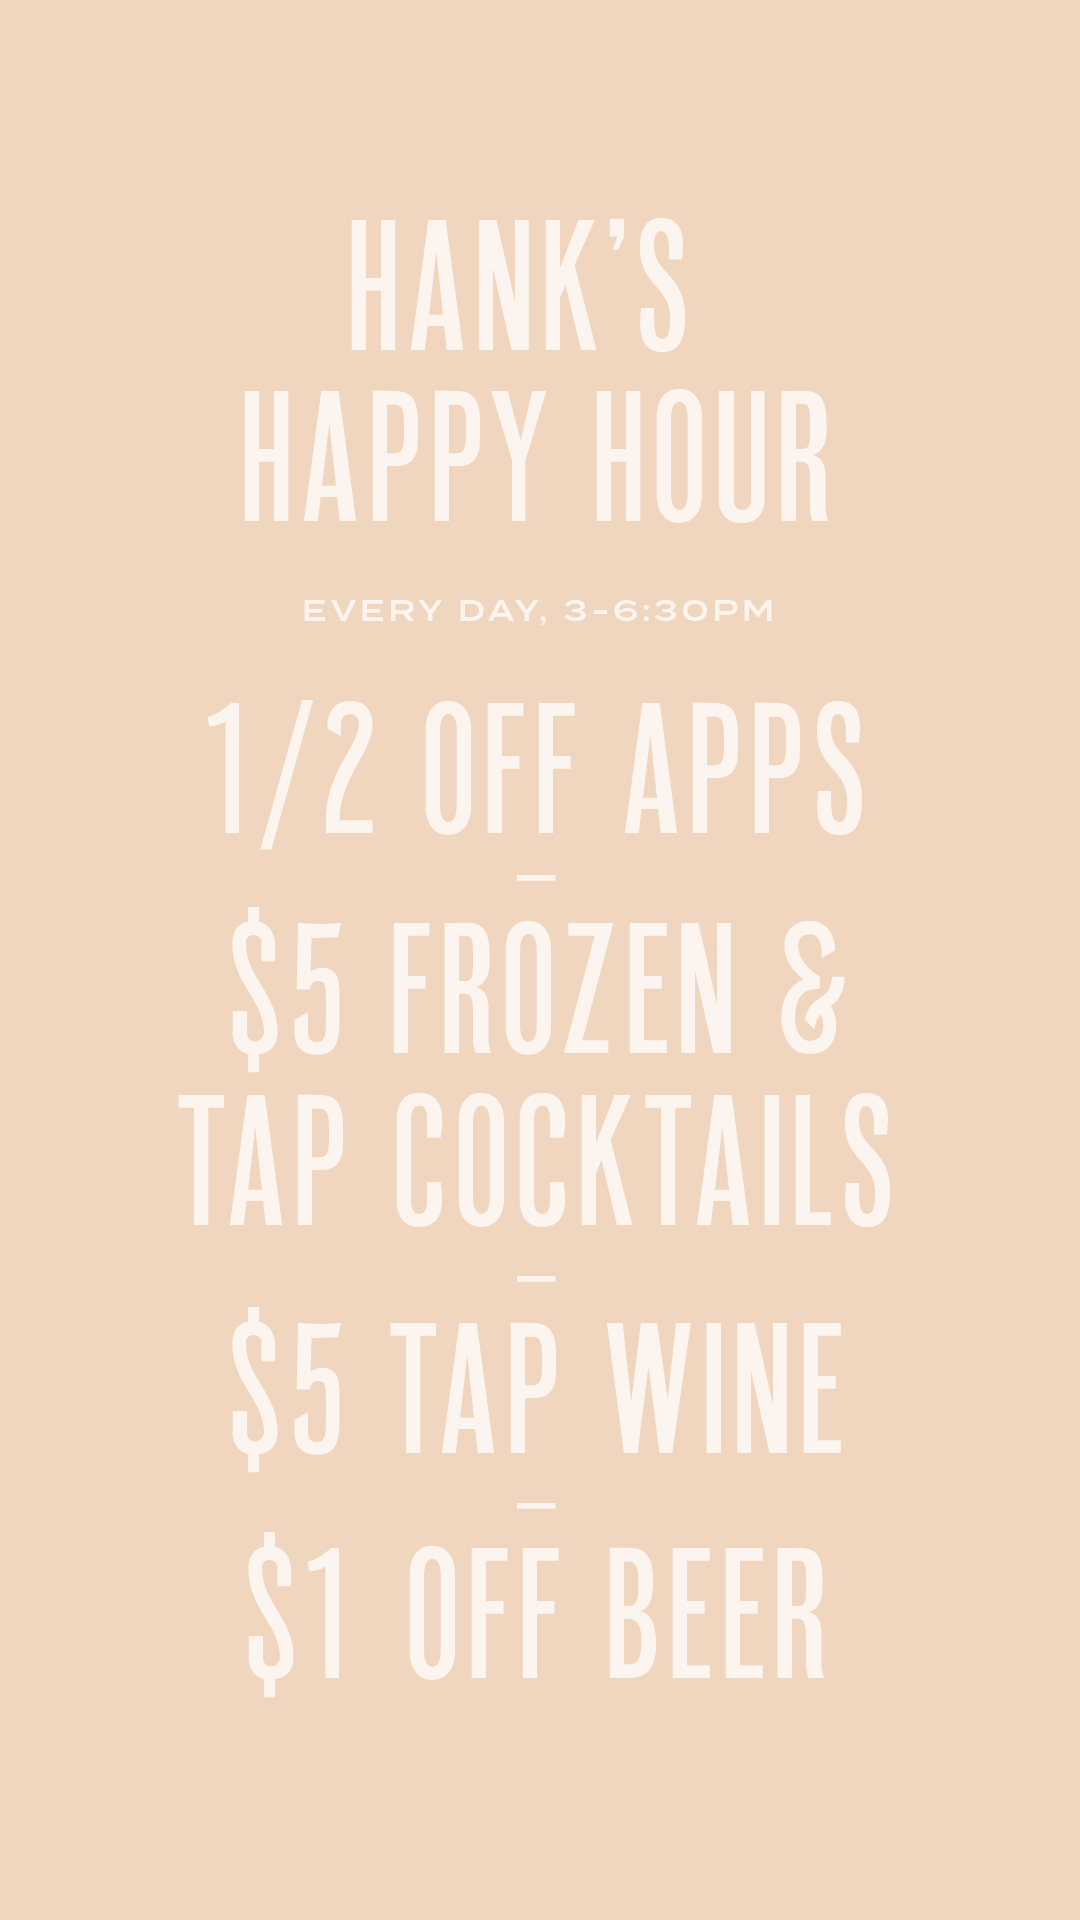 Hanks-IG-Highlights-Happy Hour Details.png